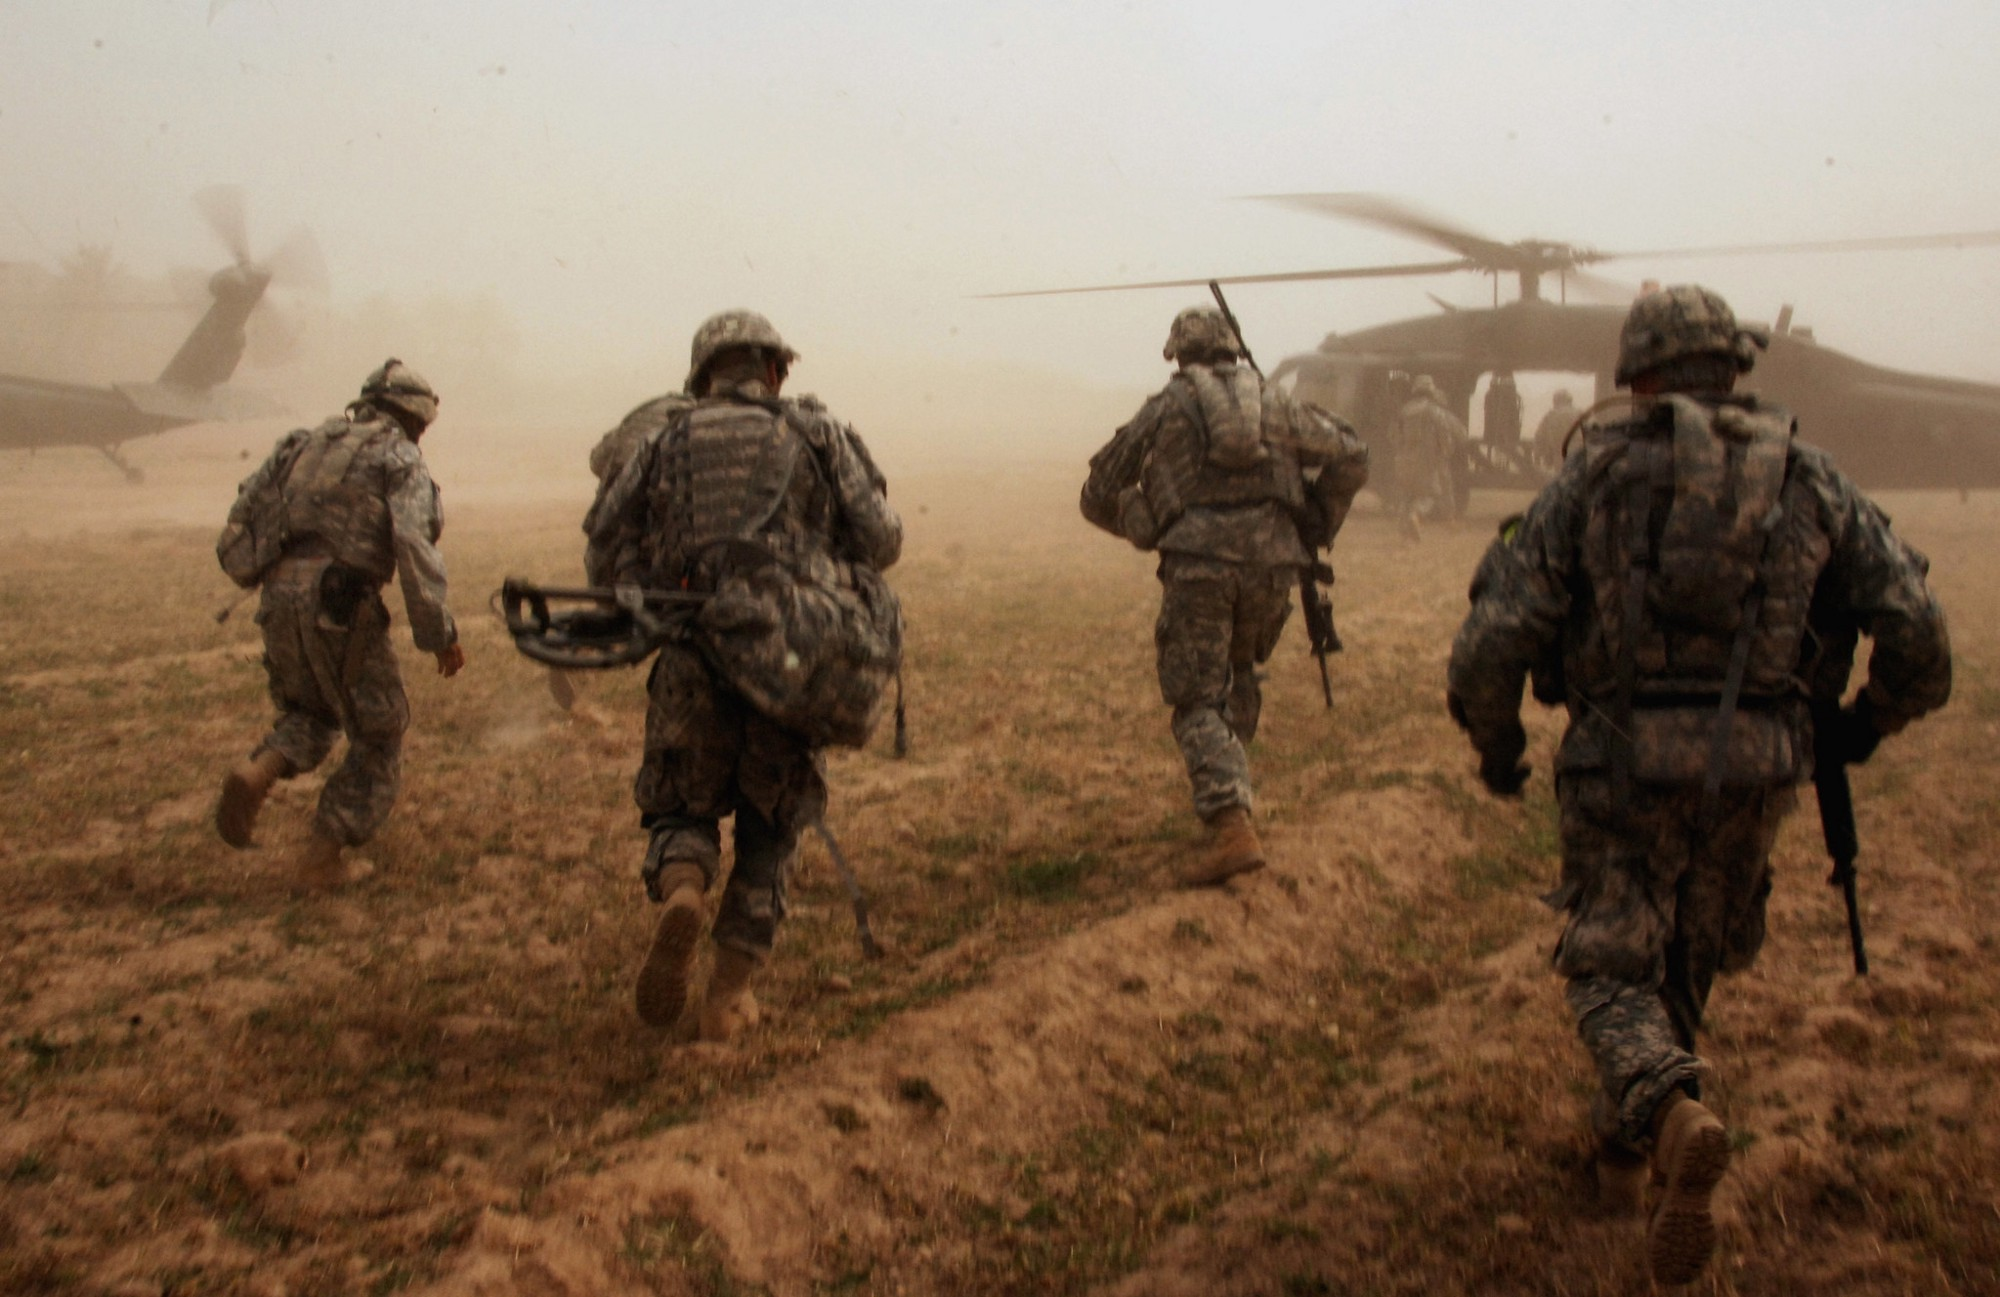 """Image ID: Four US troops run to a helicopter. SEO Title: President Joe Biden ends the War in Iraq—or does he? Subtitle: Since 2003, US presidents have declared an end to """"combat operations"""" in Iraq three times. Will this one stick? keywords: foreign policy, Iraq War, Joe Biden, insurgency, forever war, military"""